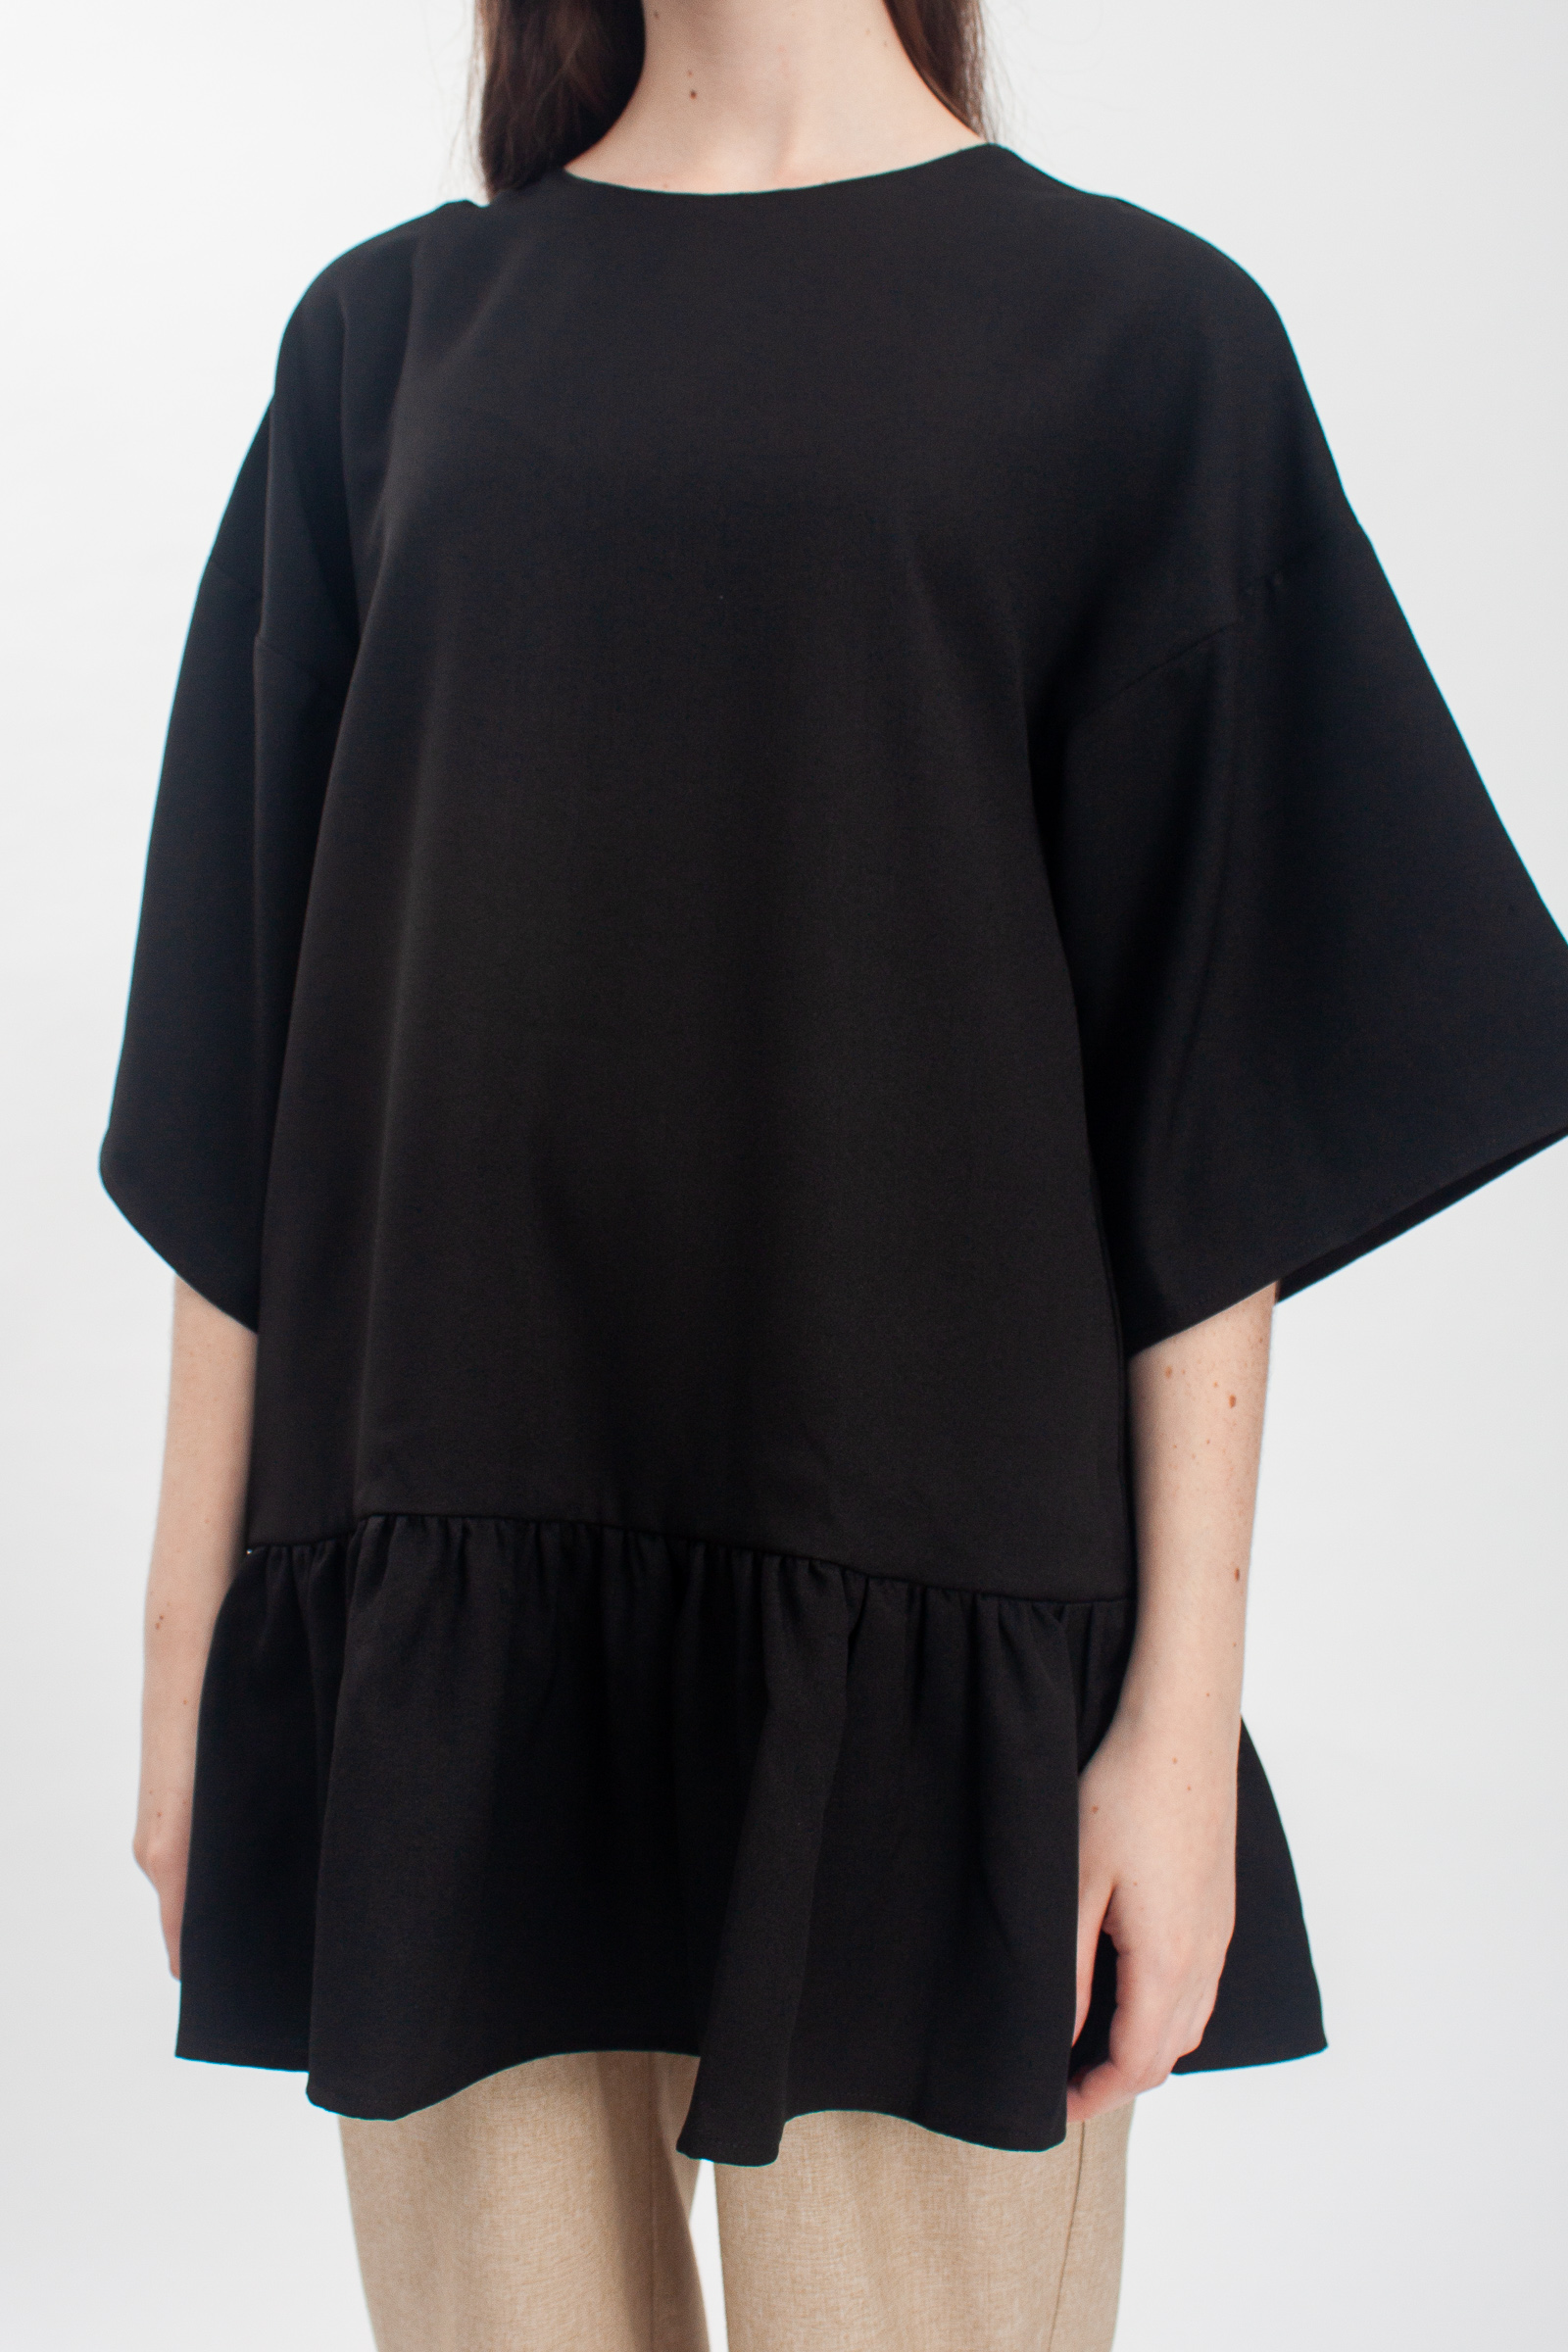 Shopatvelvet Norma Top Black